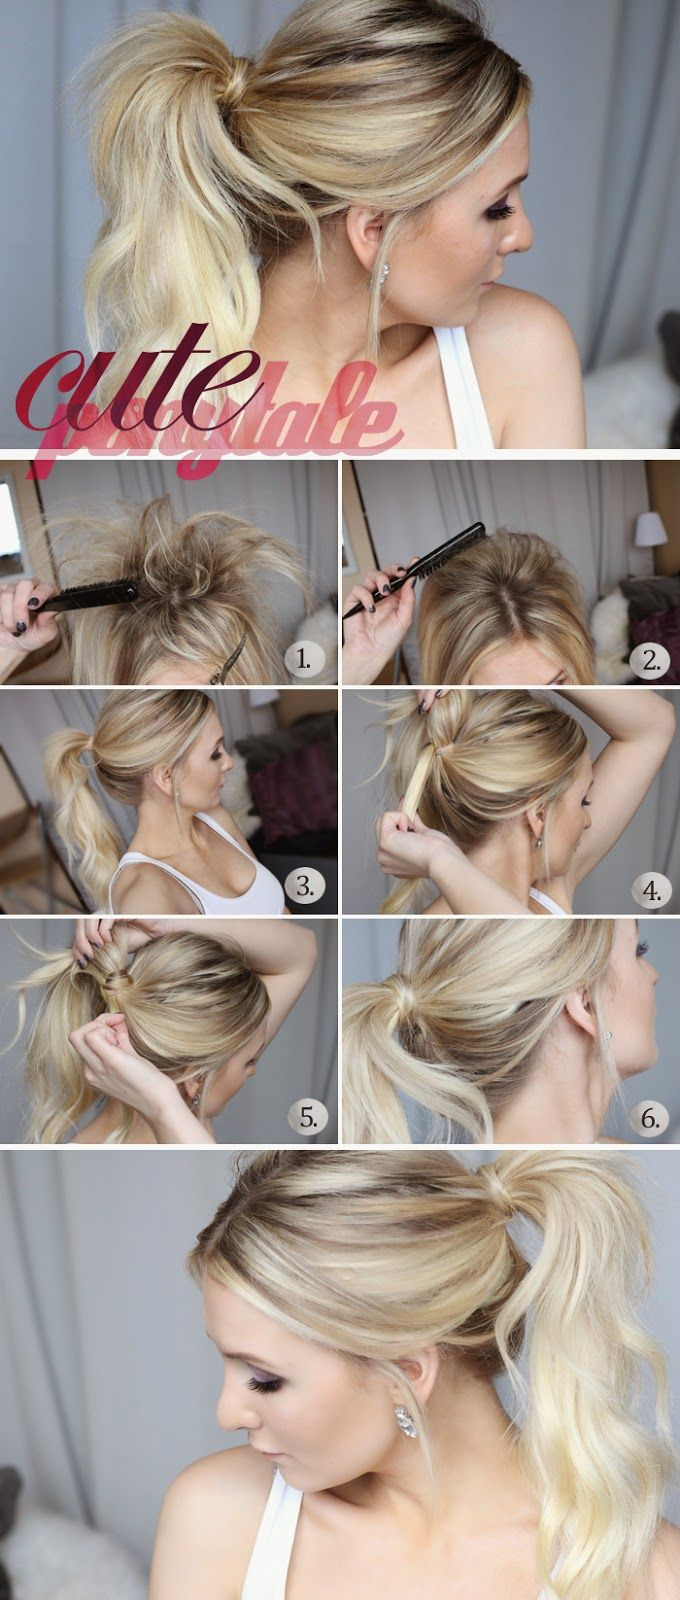 How to Chic: CUTE PONYTAIL - TUTORIAL